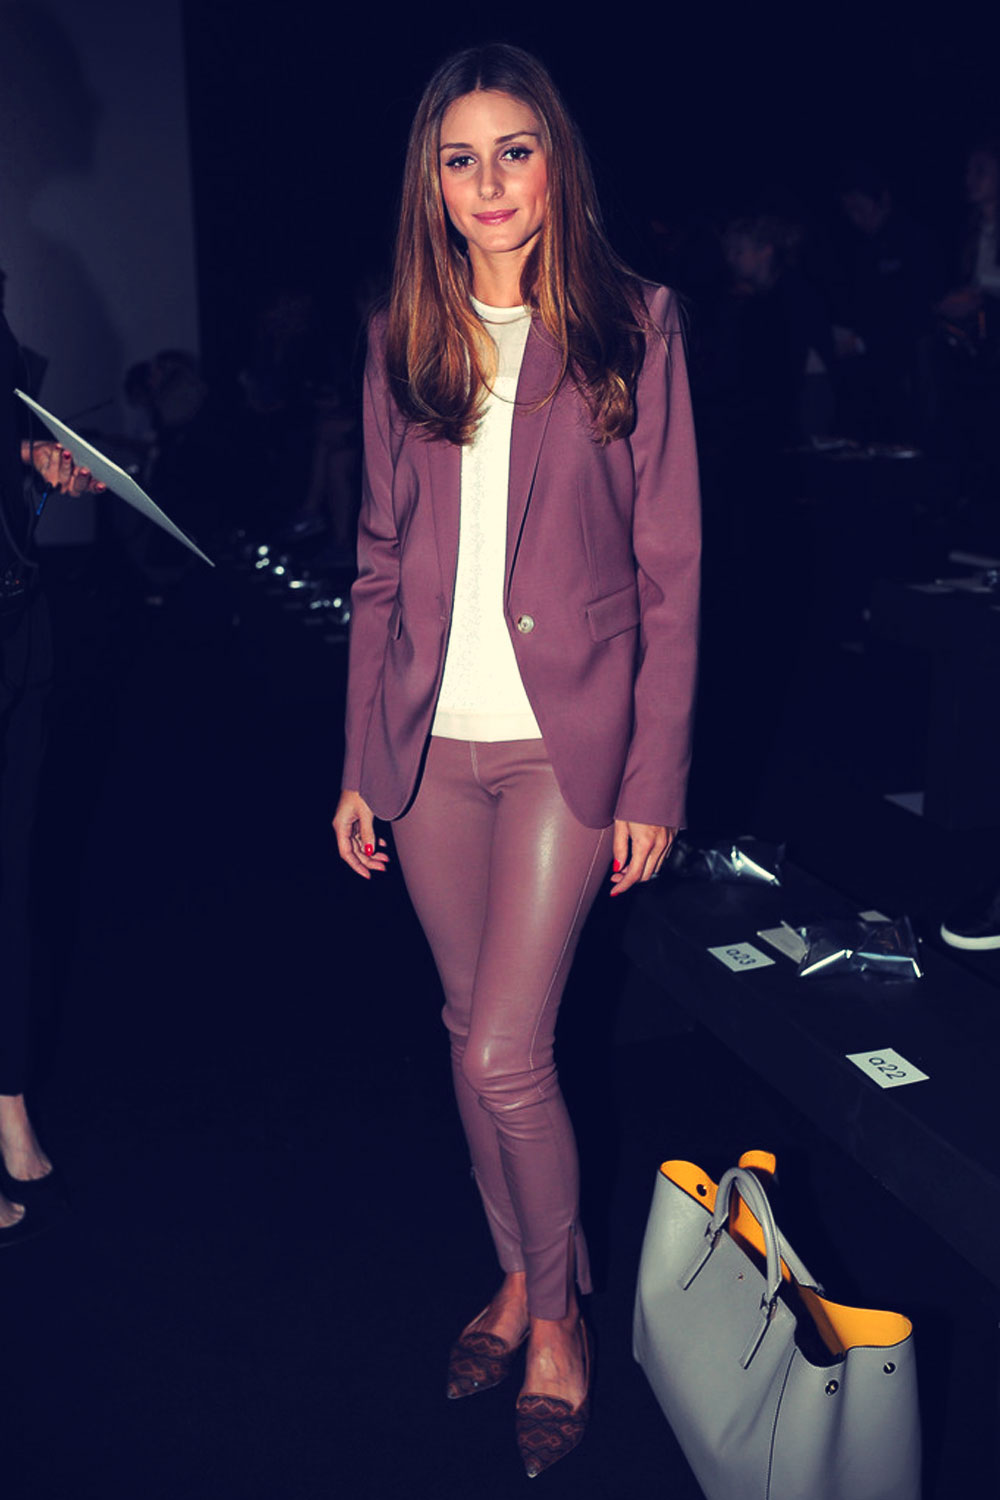 Olivia Palermo attends the Anya Hindmarch show